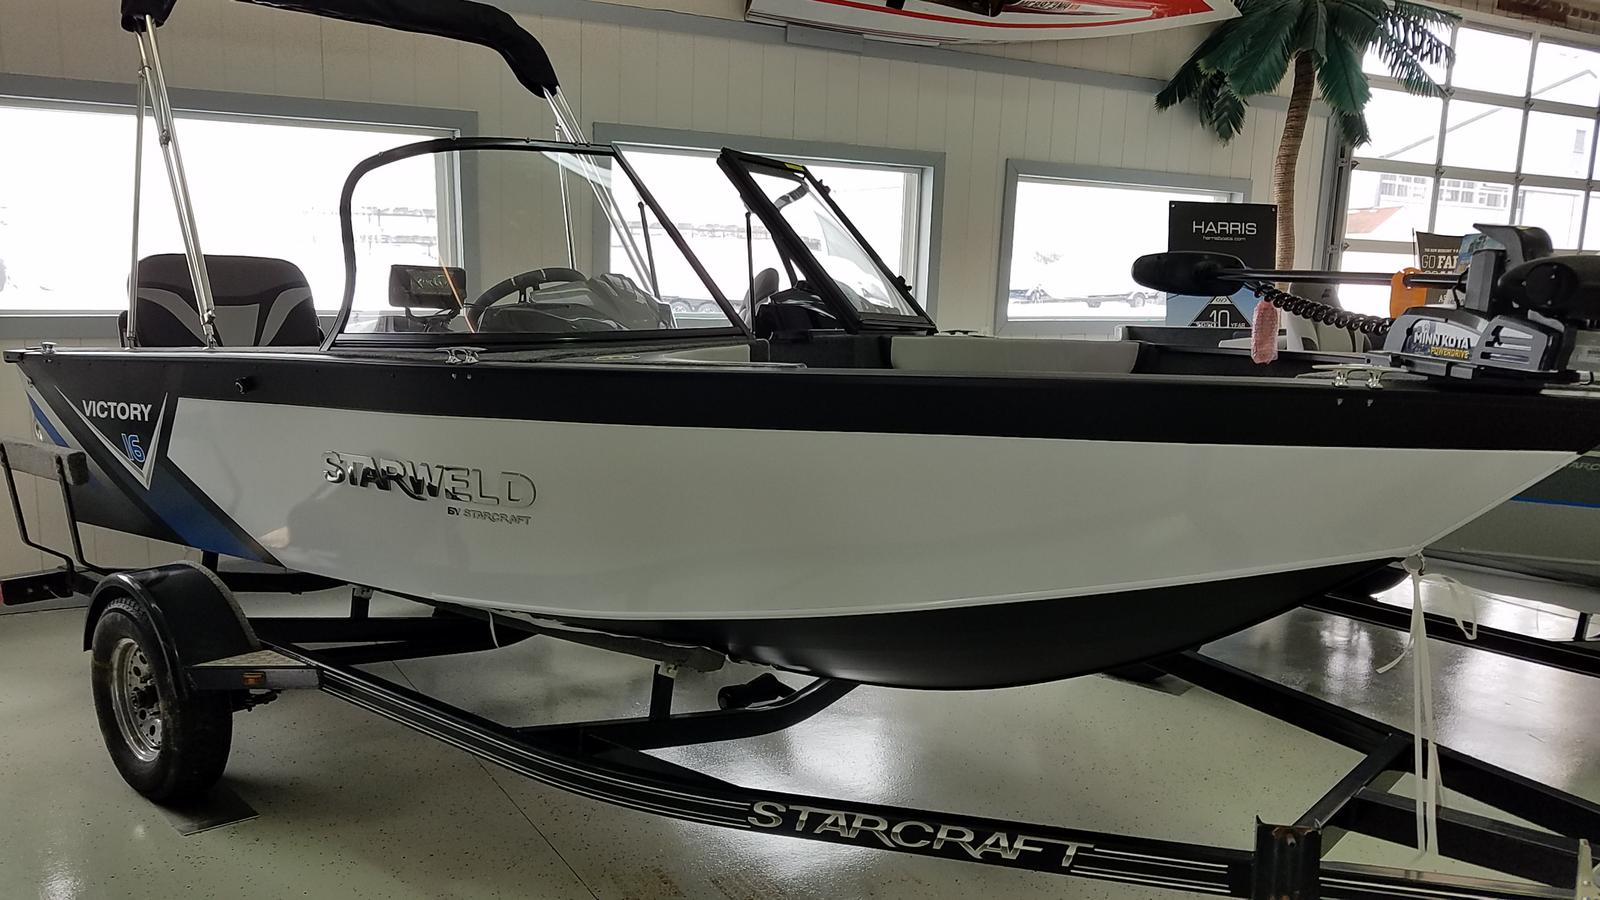 2021 Starweld boat for sale, model of the boat is Victory 16 DC & Image # 1 of 8